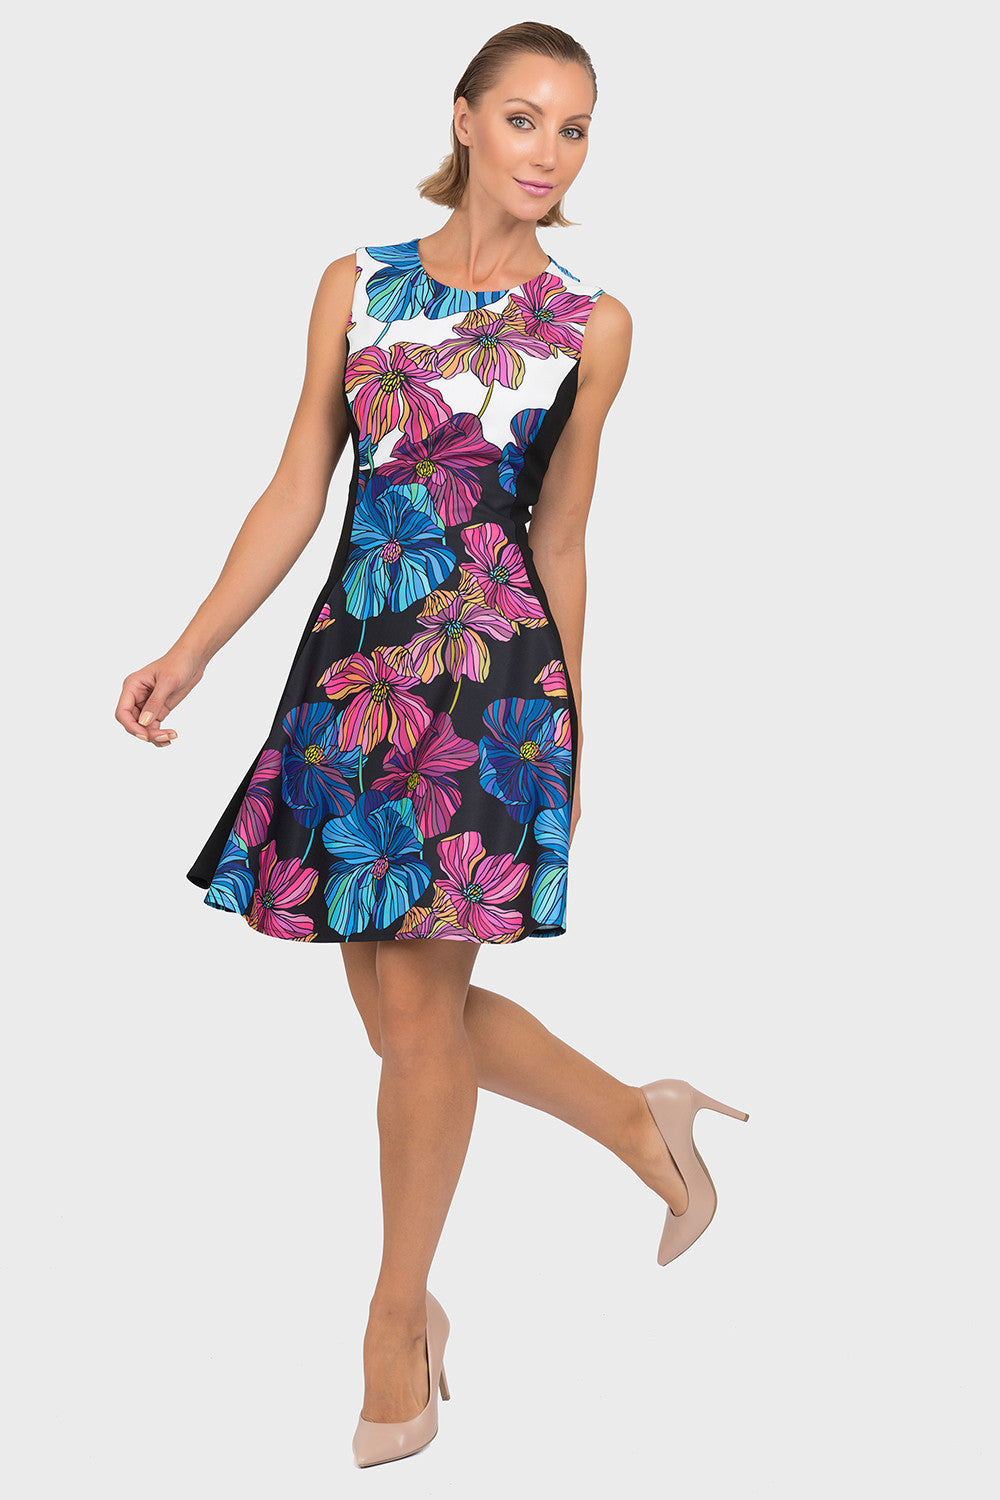 FLORAL FIT & FLARE DRESS 192668